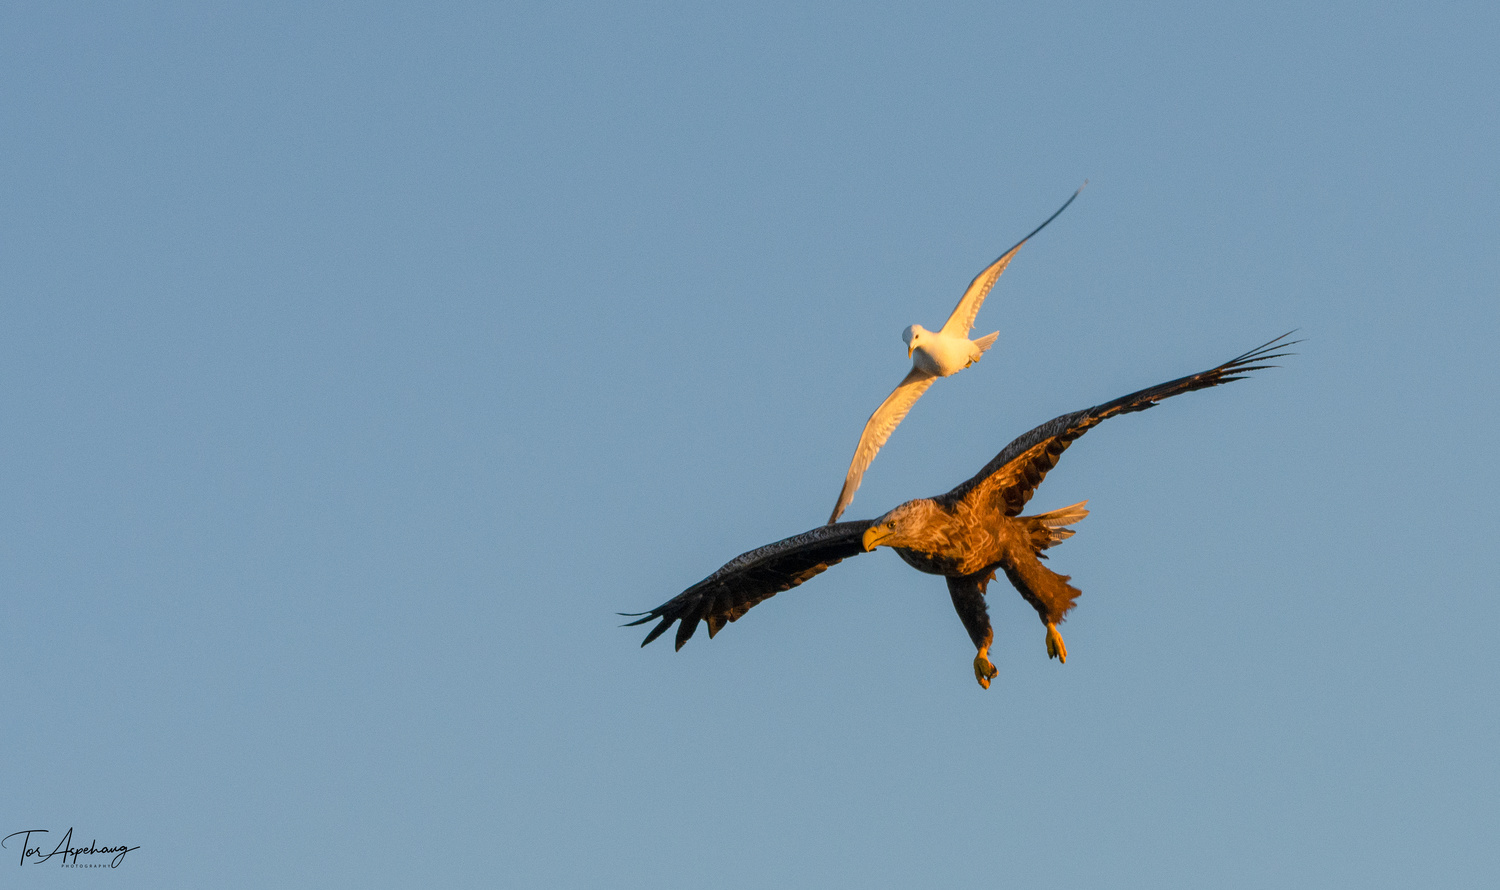 White Tailed Eagle chased by seagull 2 by Tor Aspehaug